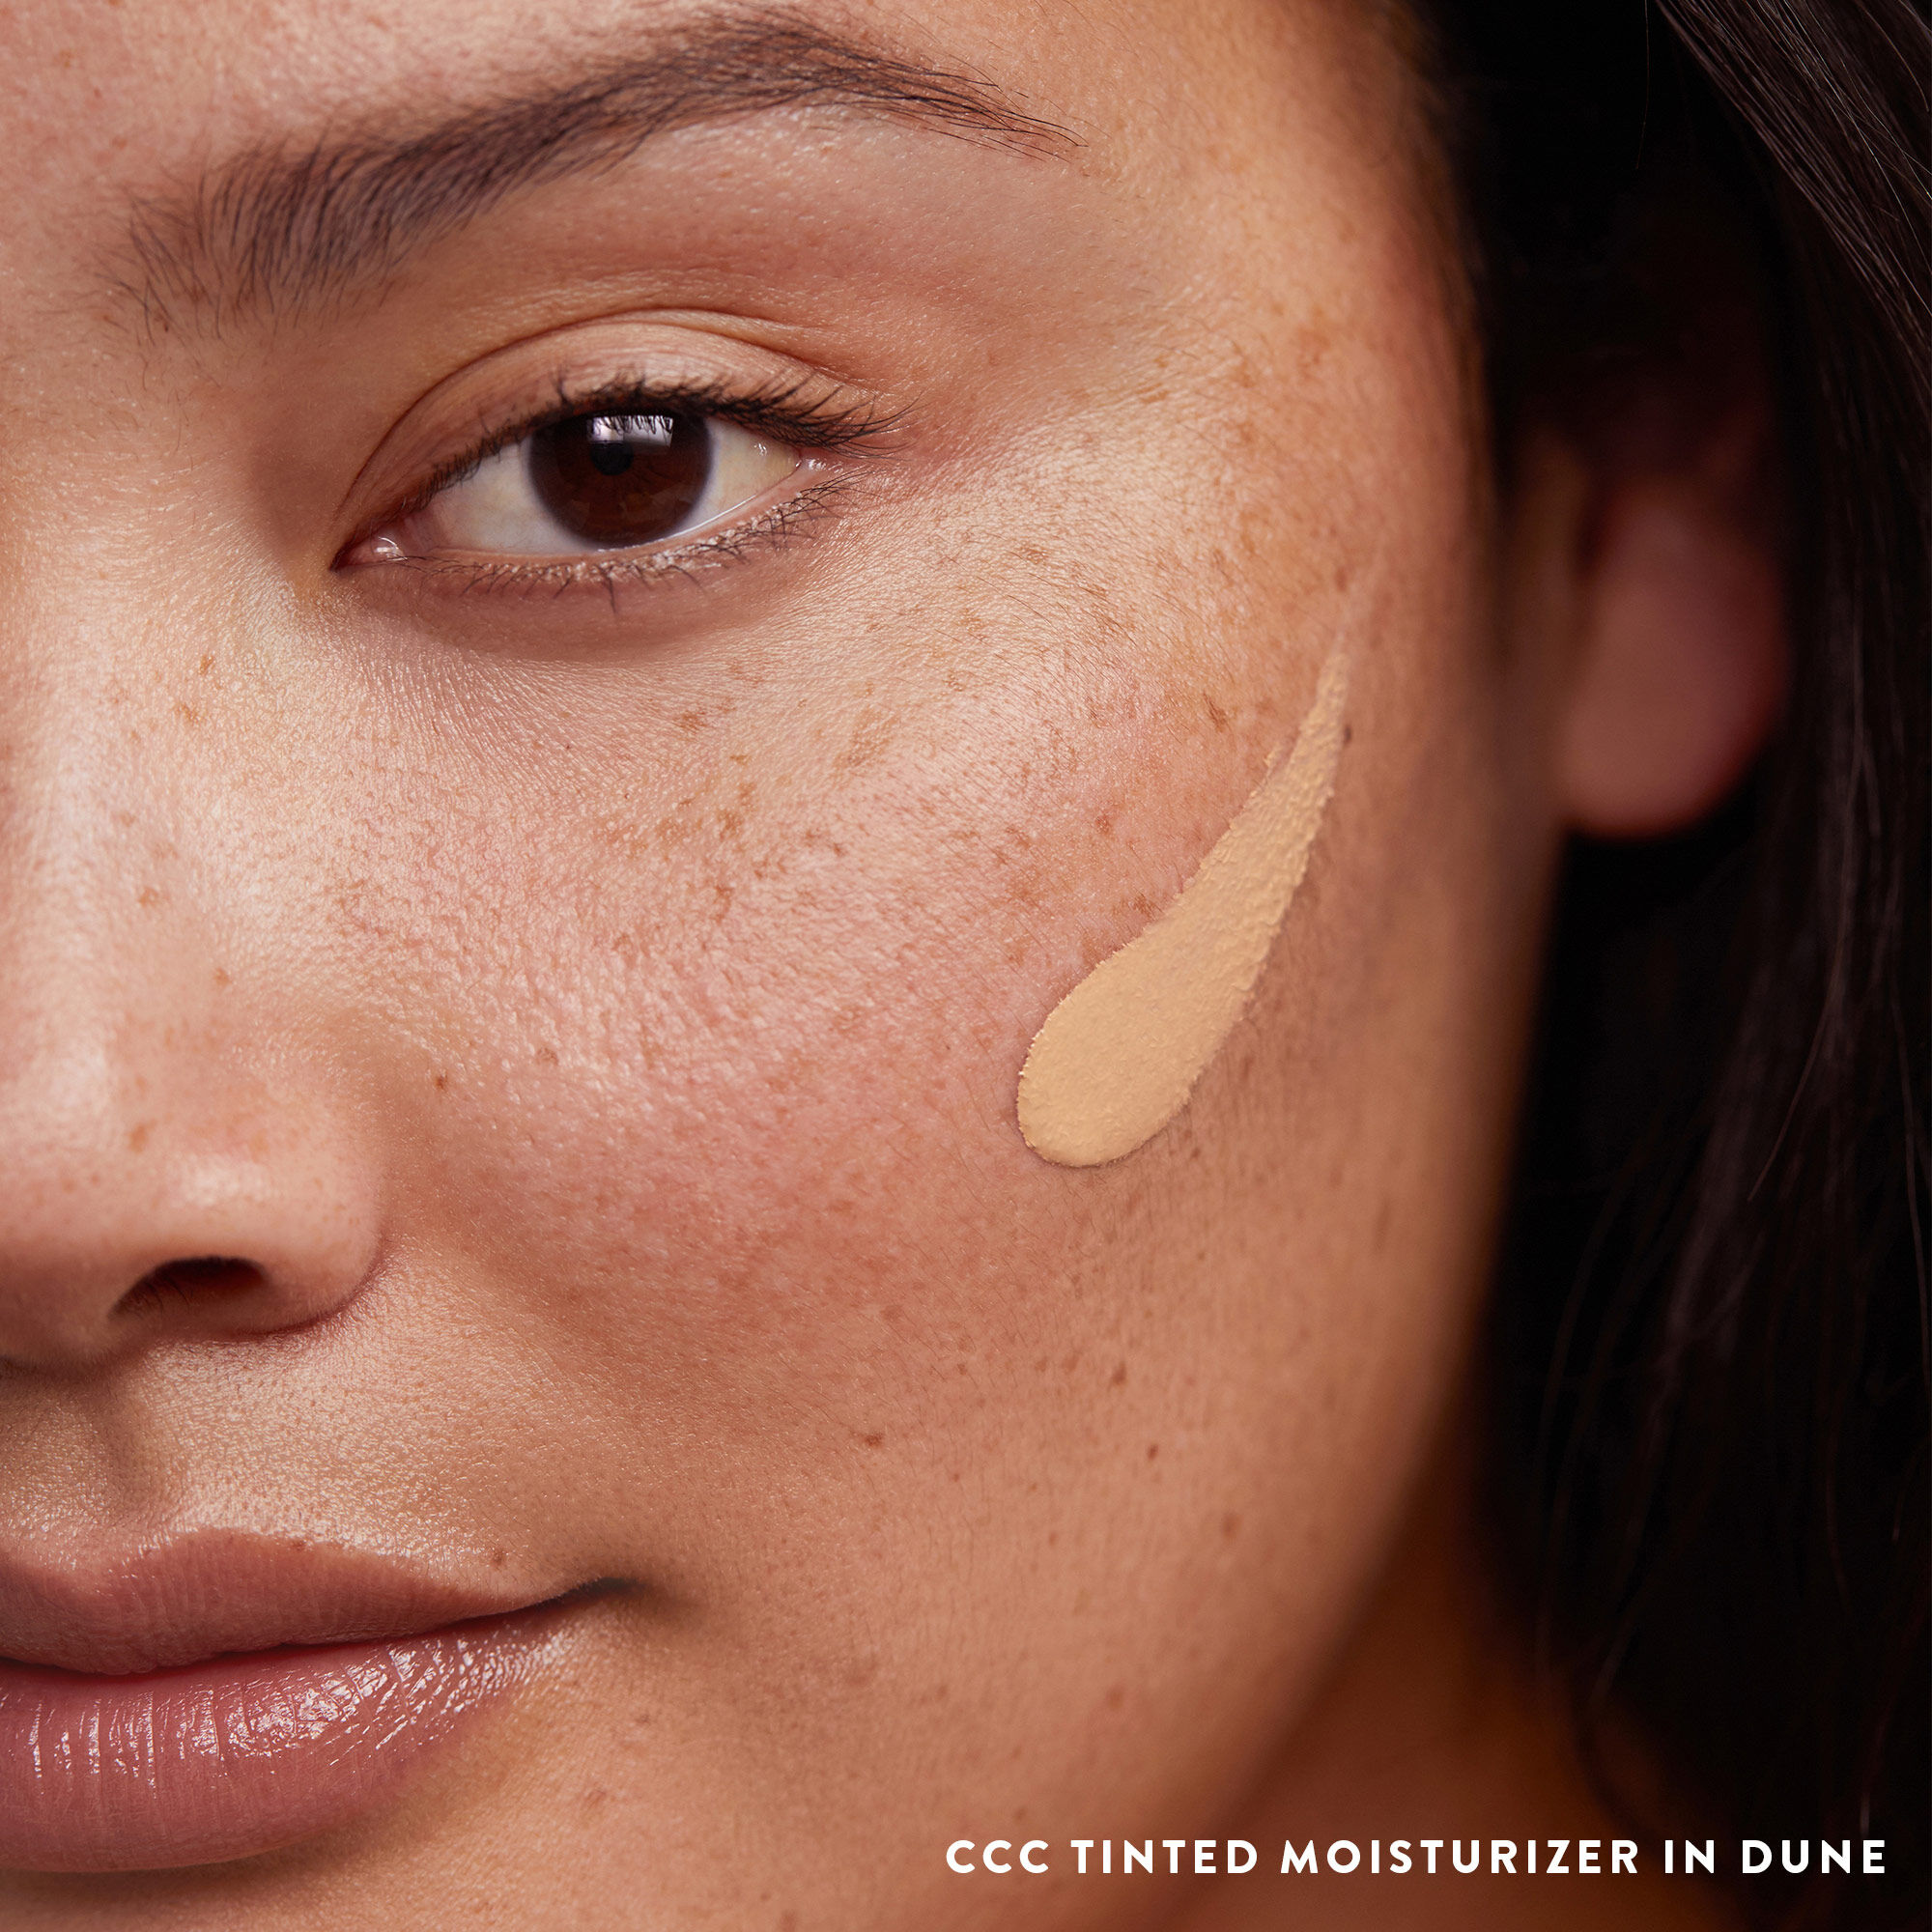 CCC Clean Corrective With Vitamin C Tinted Moisturizer Broad Spectrum SPF 30, Dune